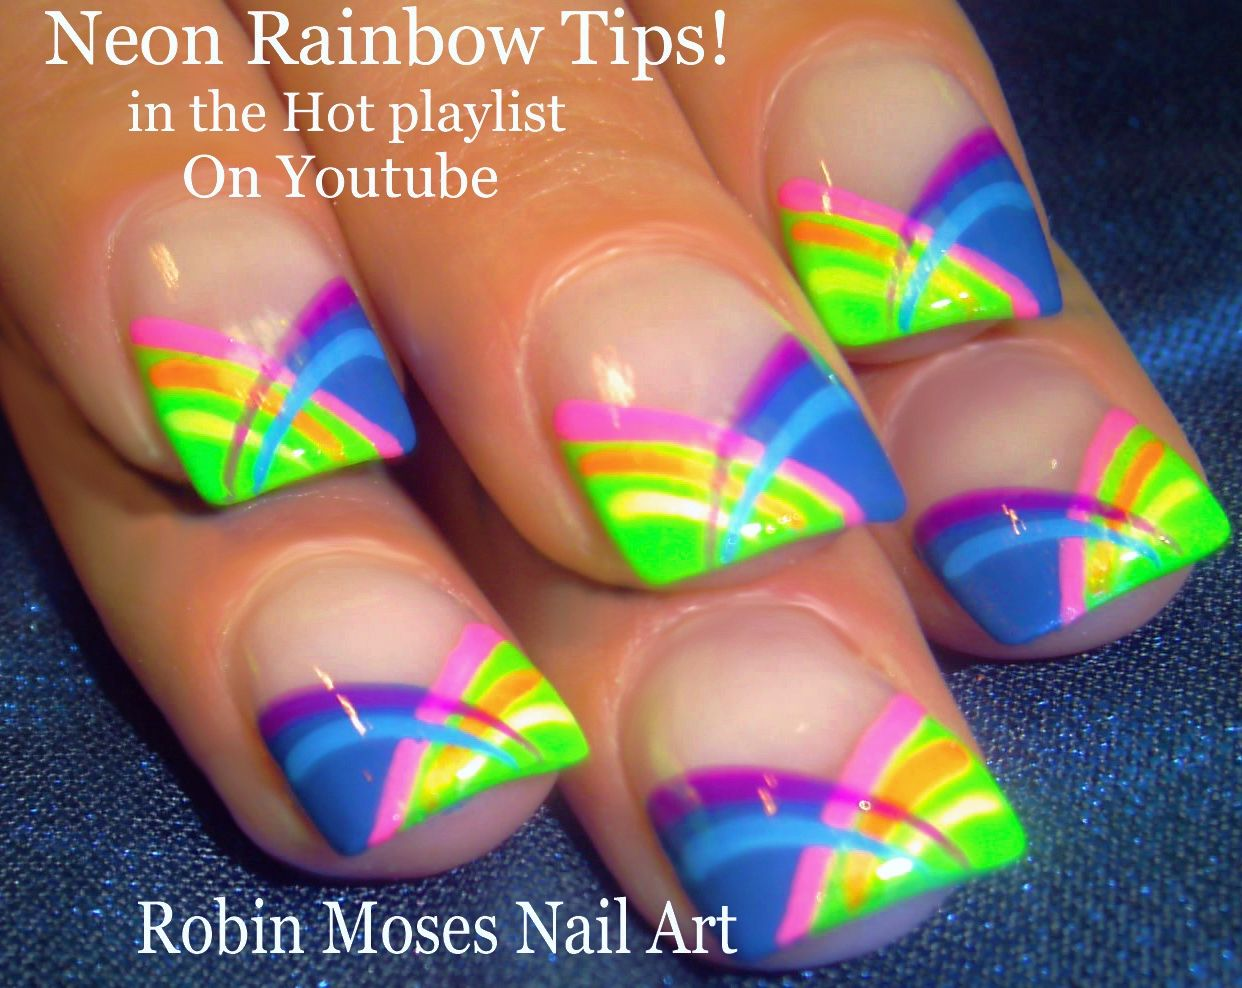 Robin Moses Nail Art: Hot Summer Nail Art Ideas full of Neon Swirls ...